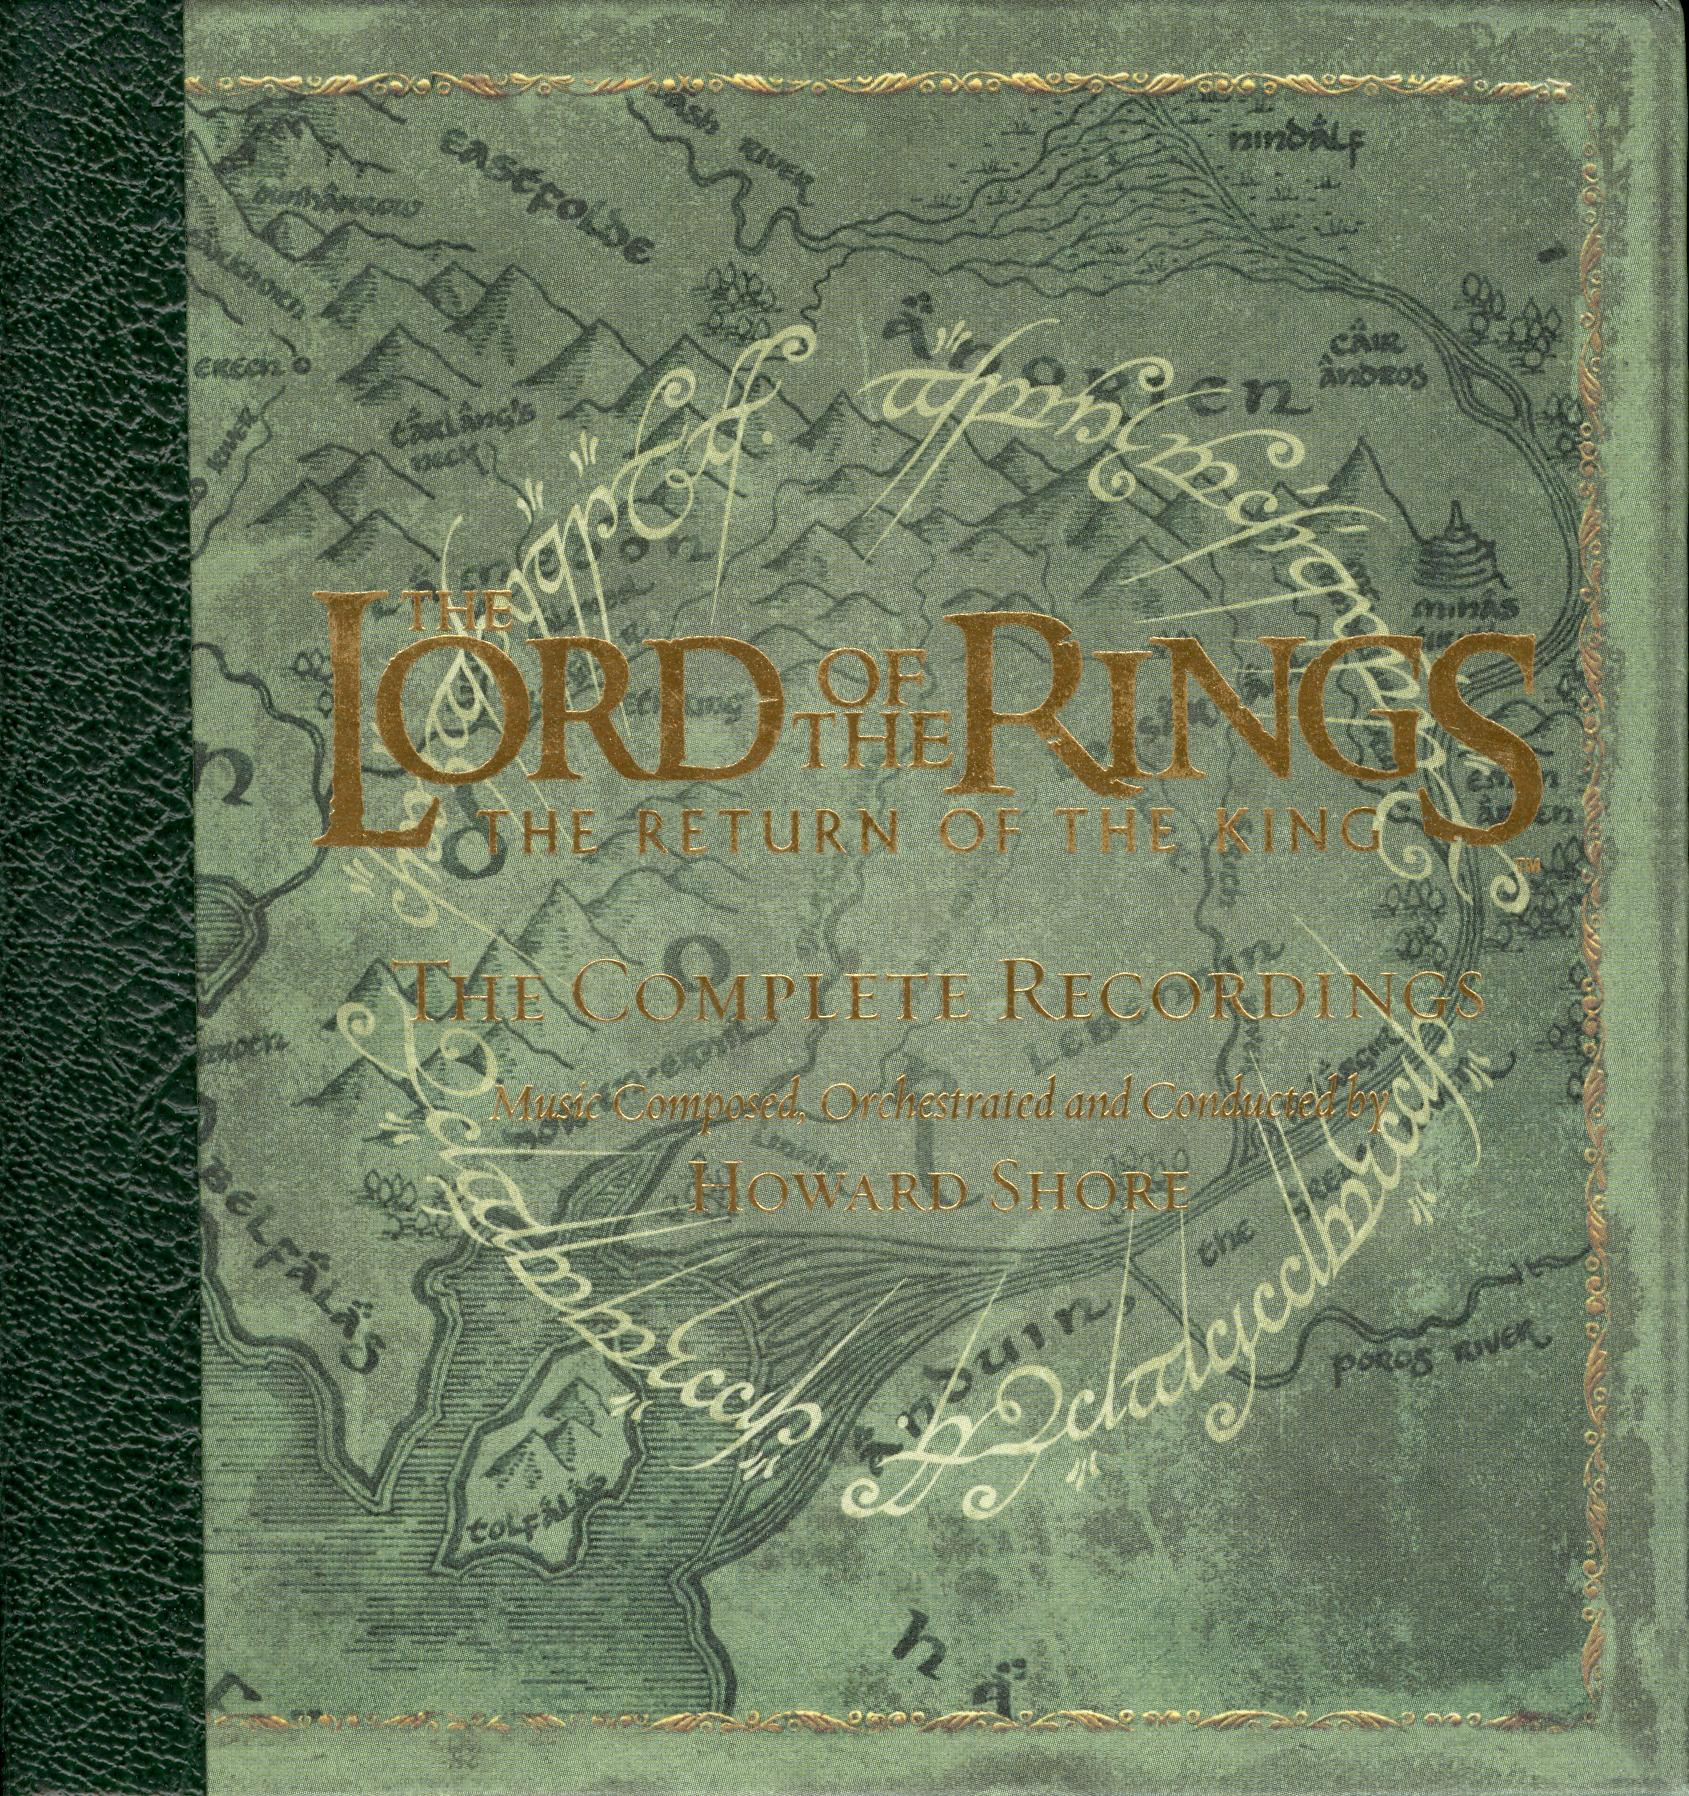 The Lord of the Rings [Film Series]